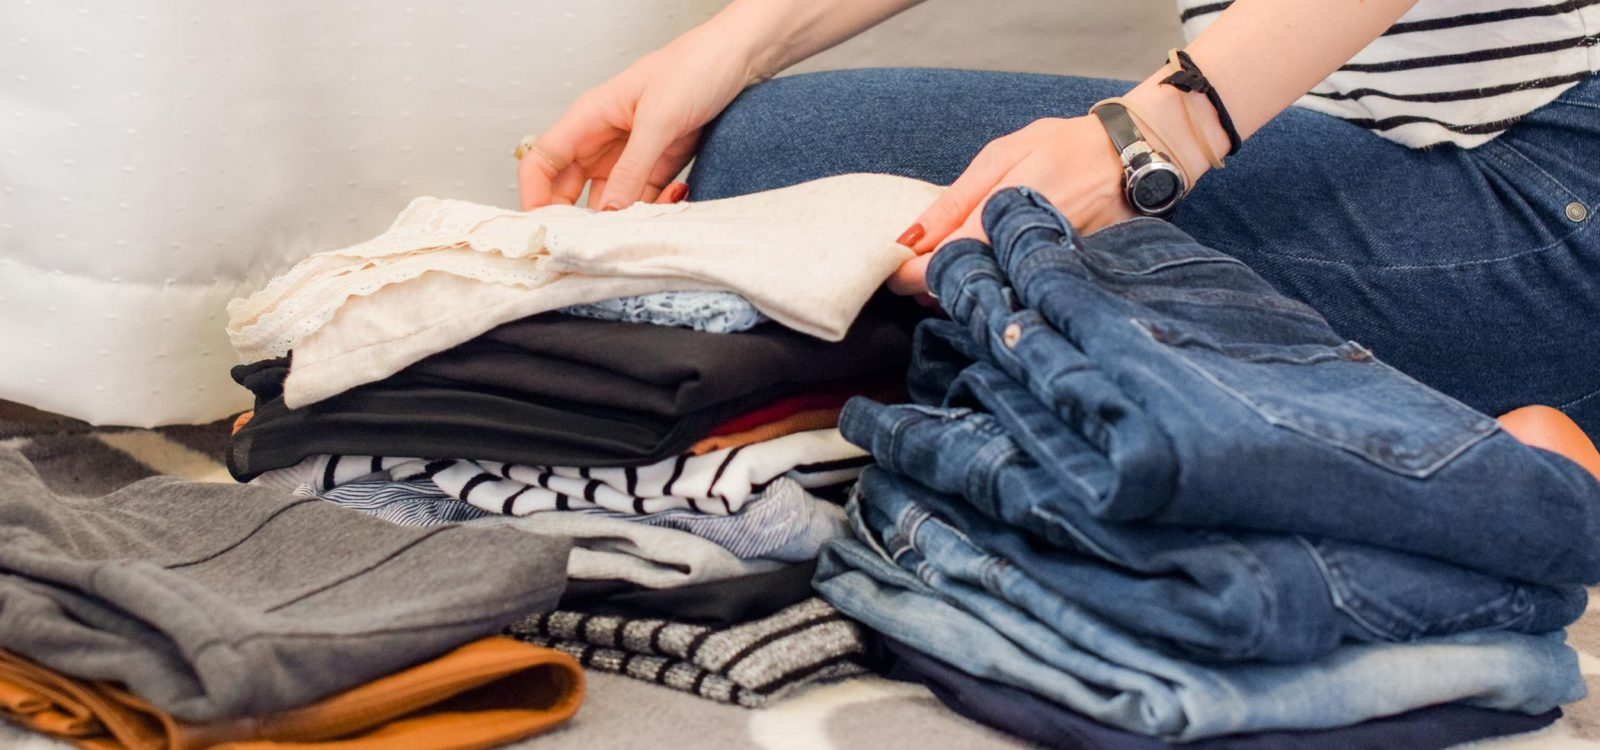 Woman folding T-shirts and jeans on the bed